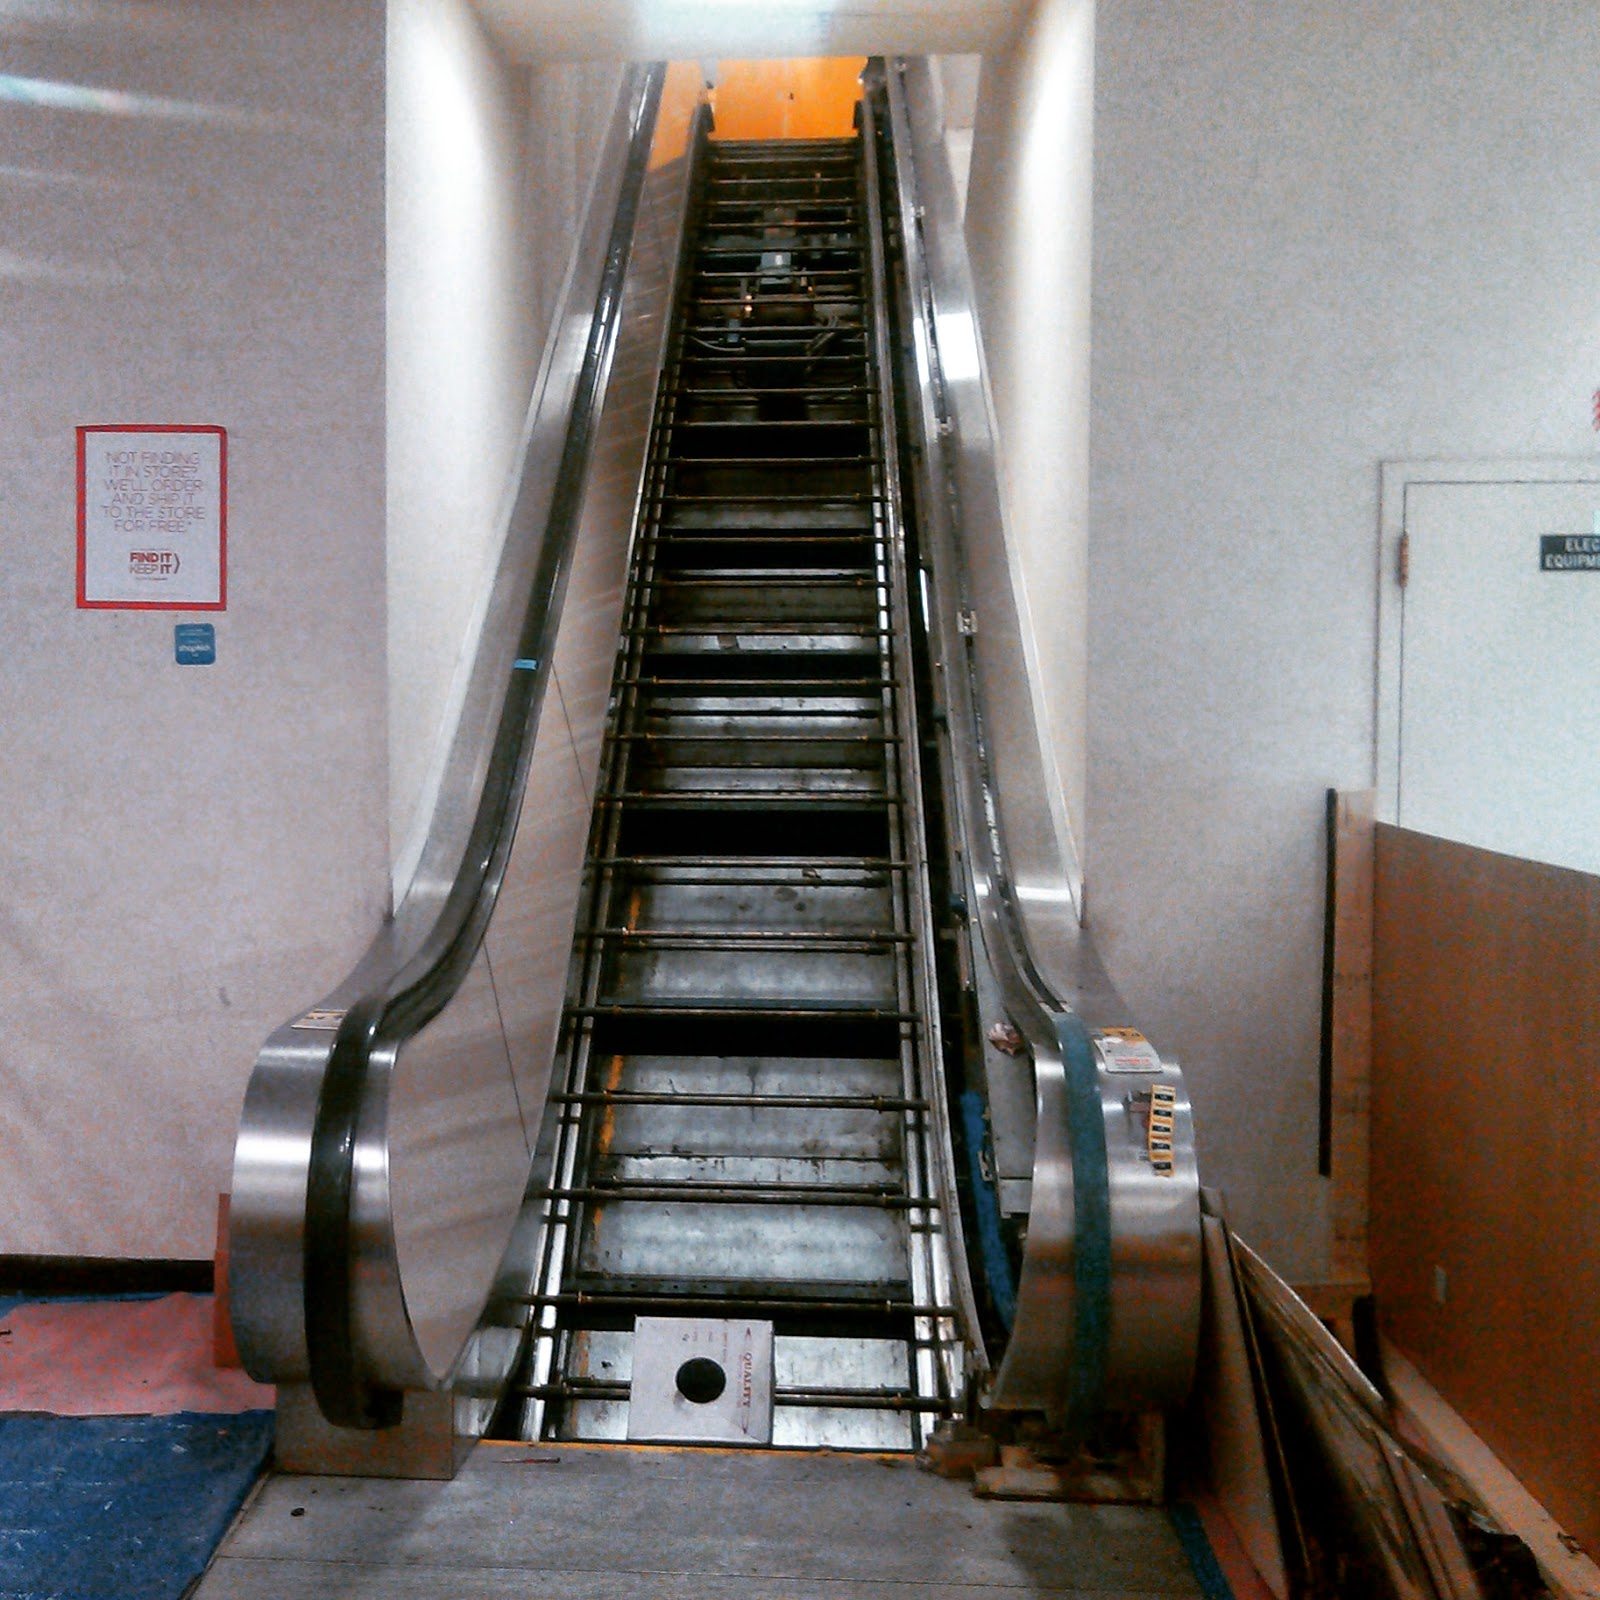 2 on the escalator from the same day last summer 4